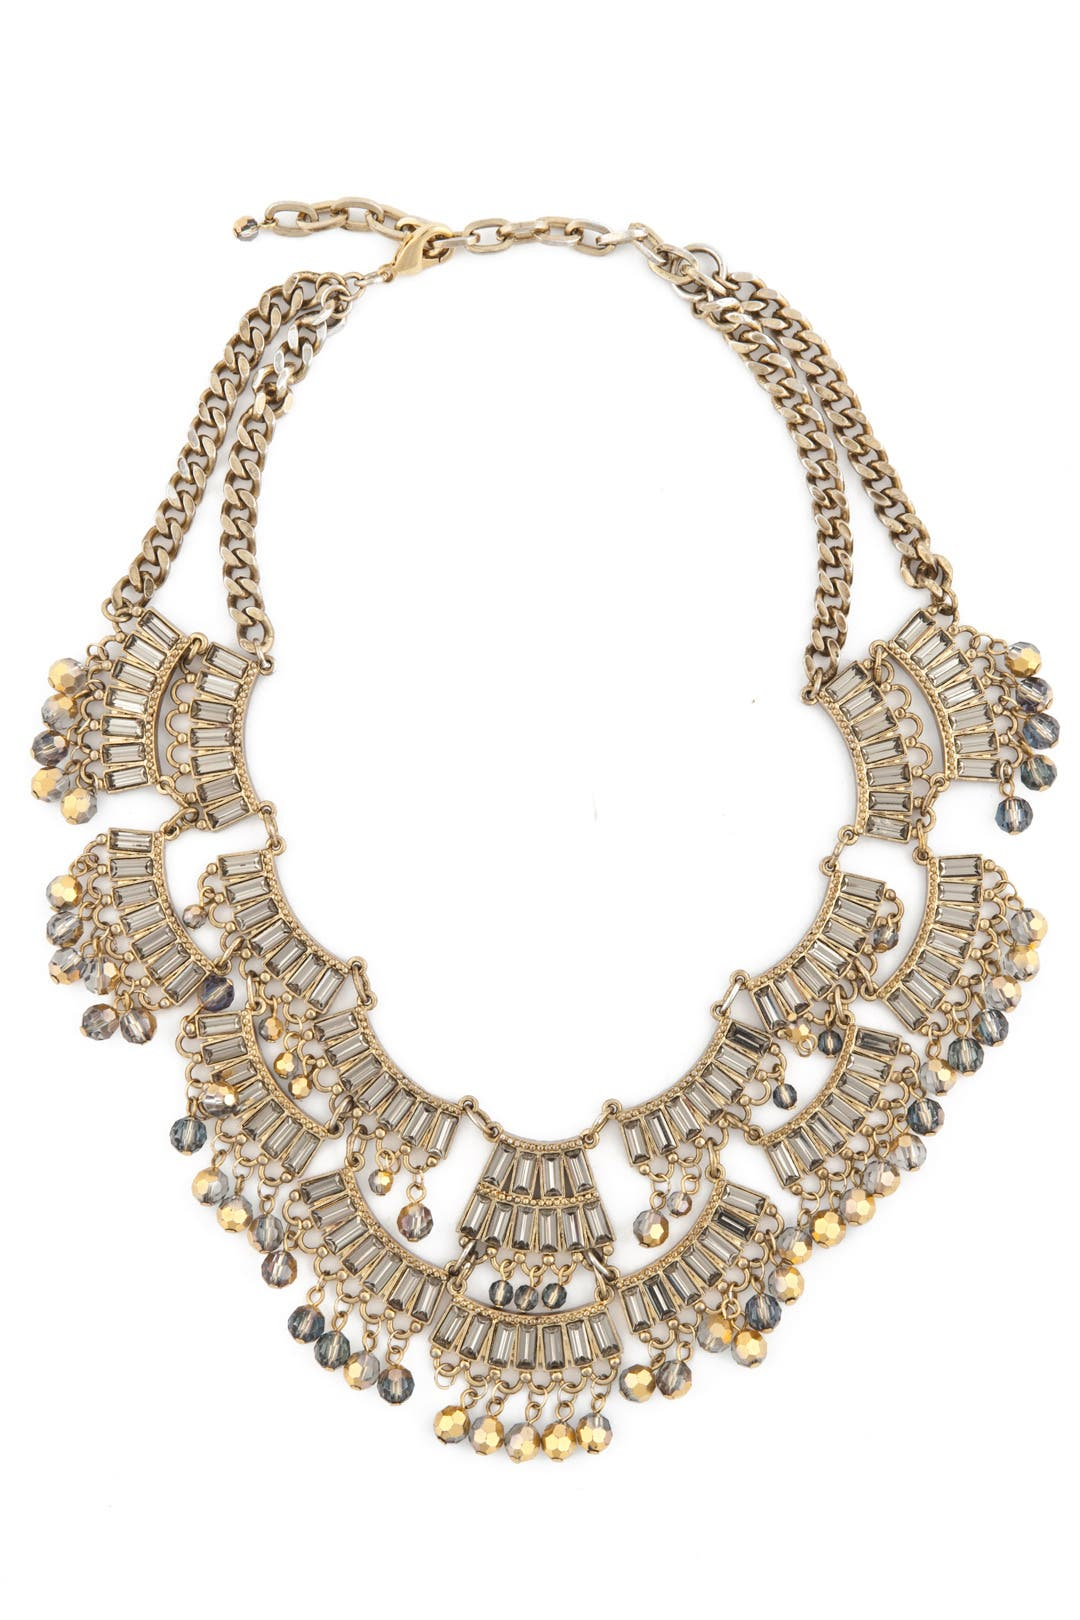 Decadent Deco Necklace by Badgley Mischka Jewelry